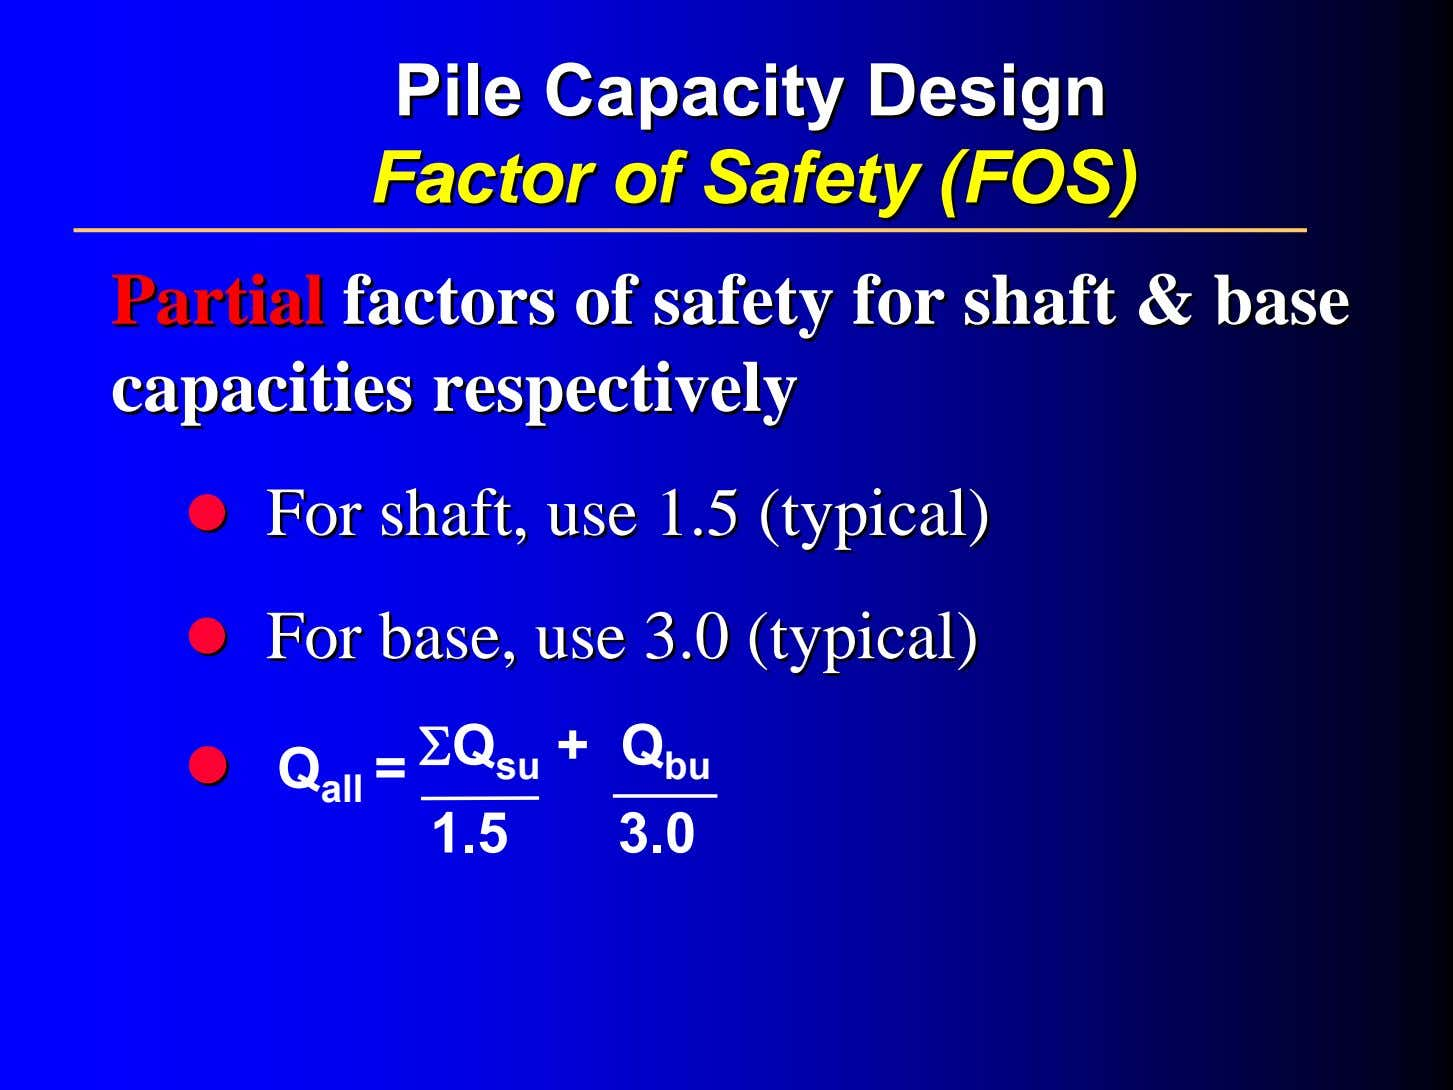 PilePile CapacityCapacity DesignDesign FactorFactor ofof SafetySafety (FOS)(FOS) PartialPartial factorsfactors ofof